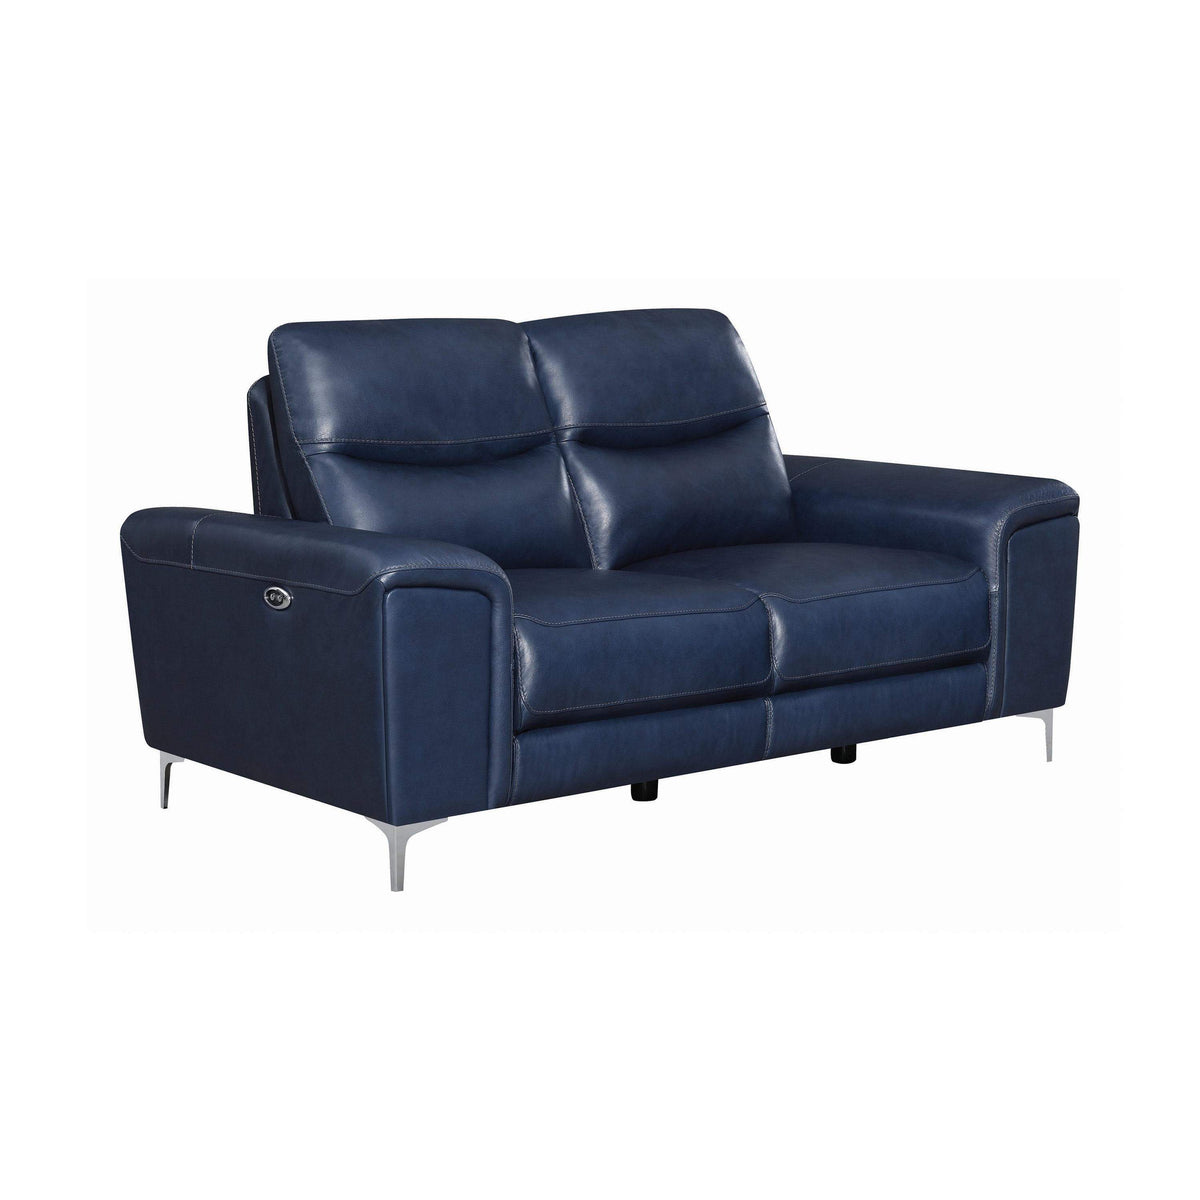 Leather Sofas In Los Angeles: Lennox Blue Genuine Leather Power Recliner Loveseat